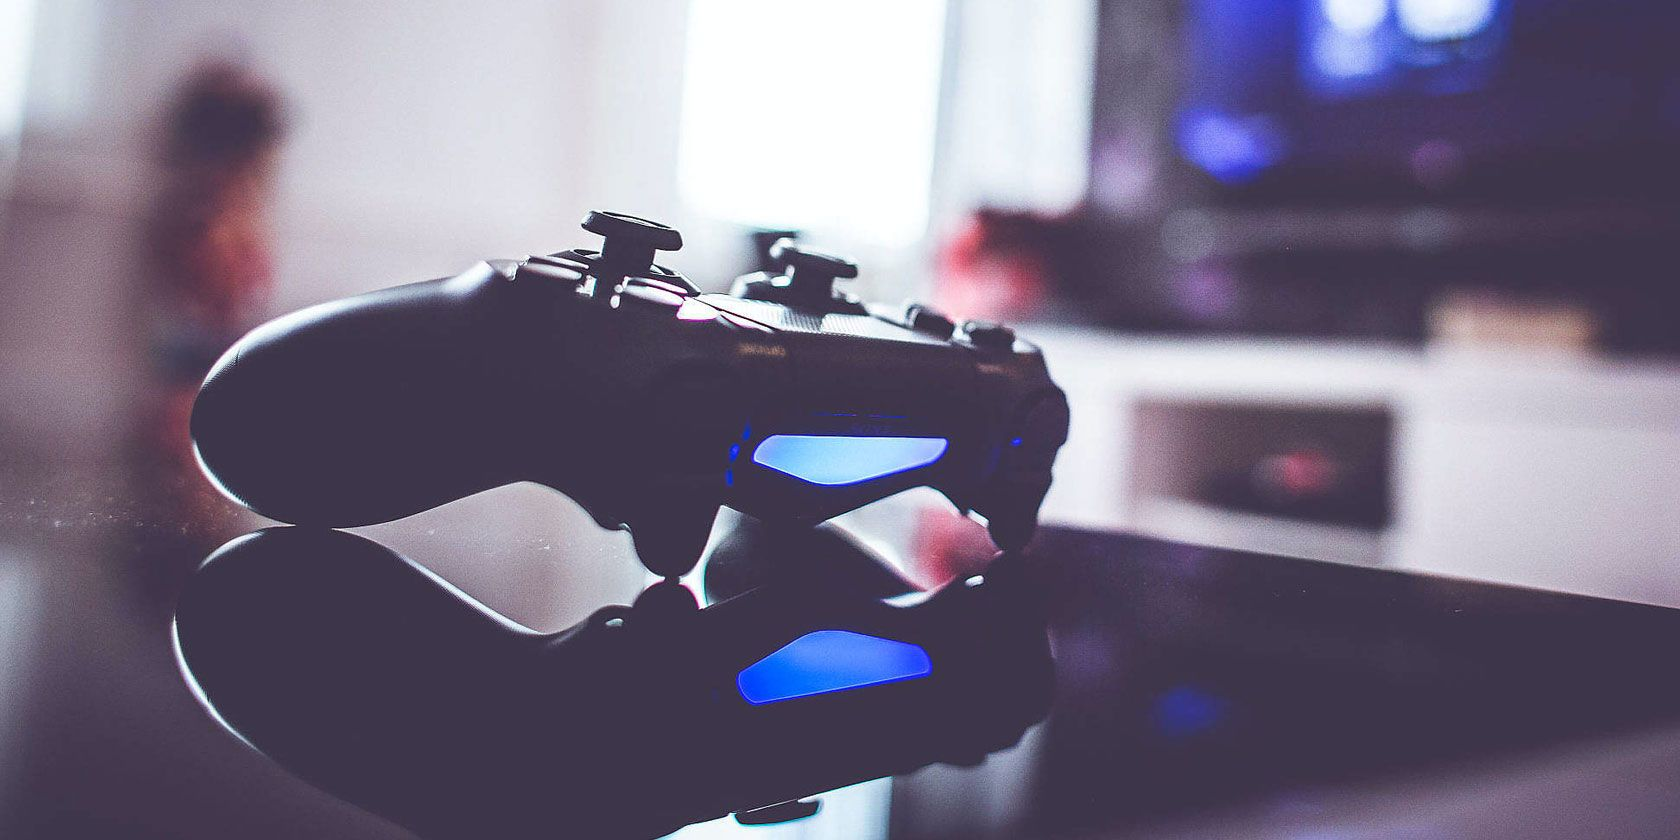 Top 7 Sites for Video Game Deals & Bargains